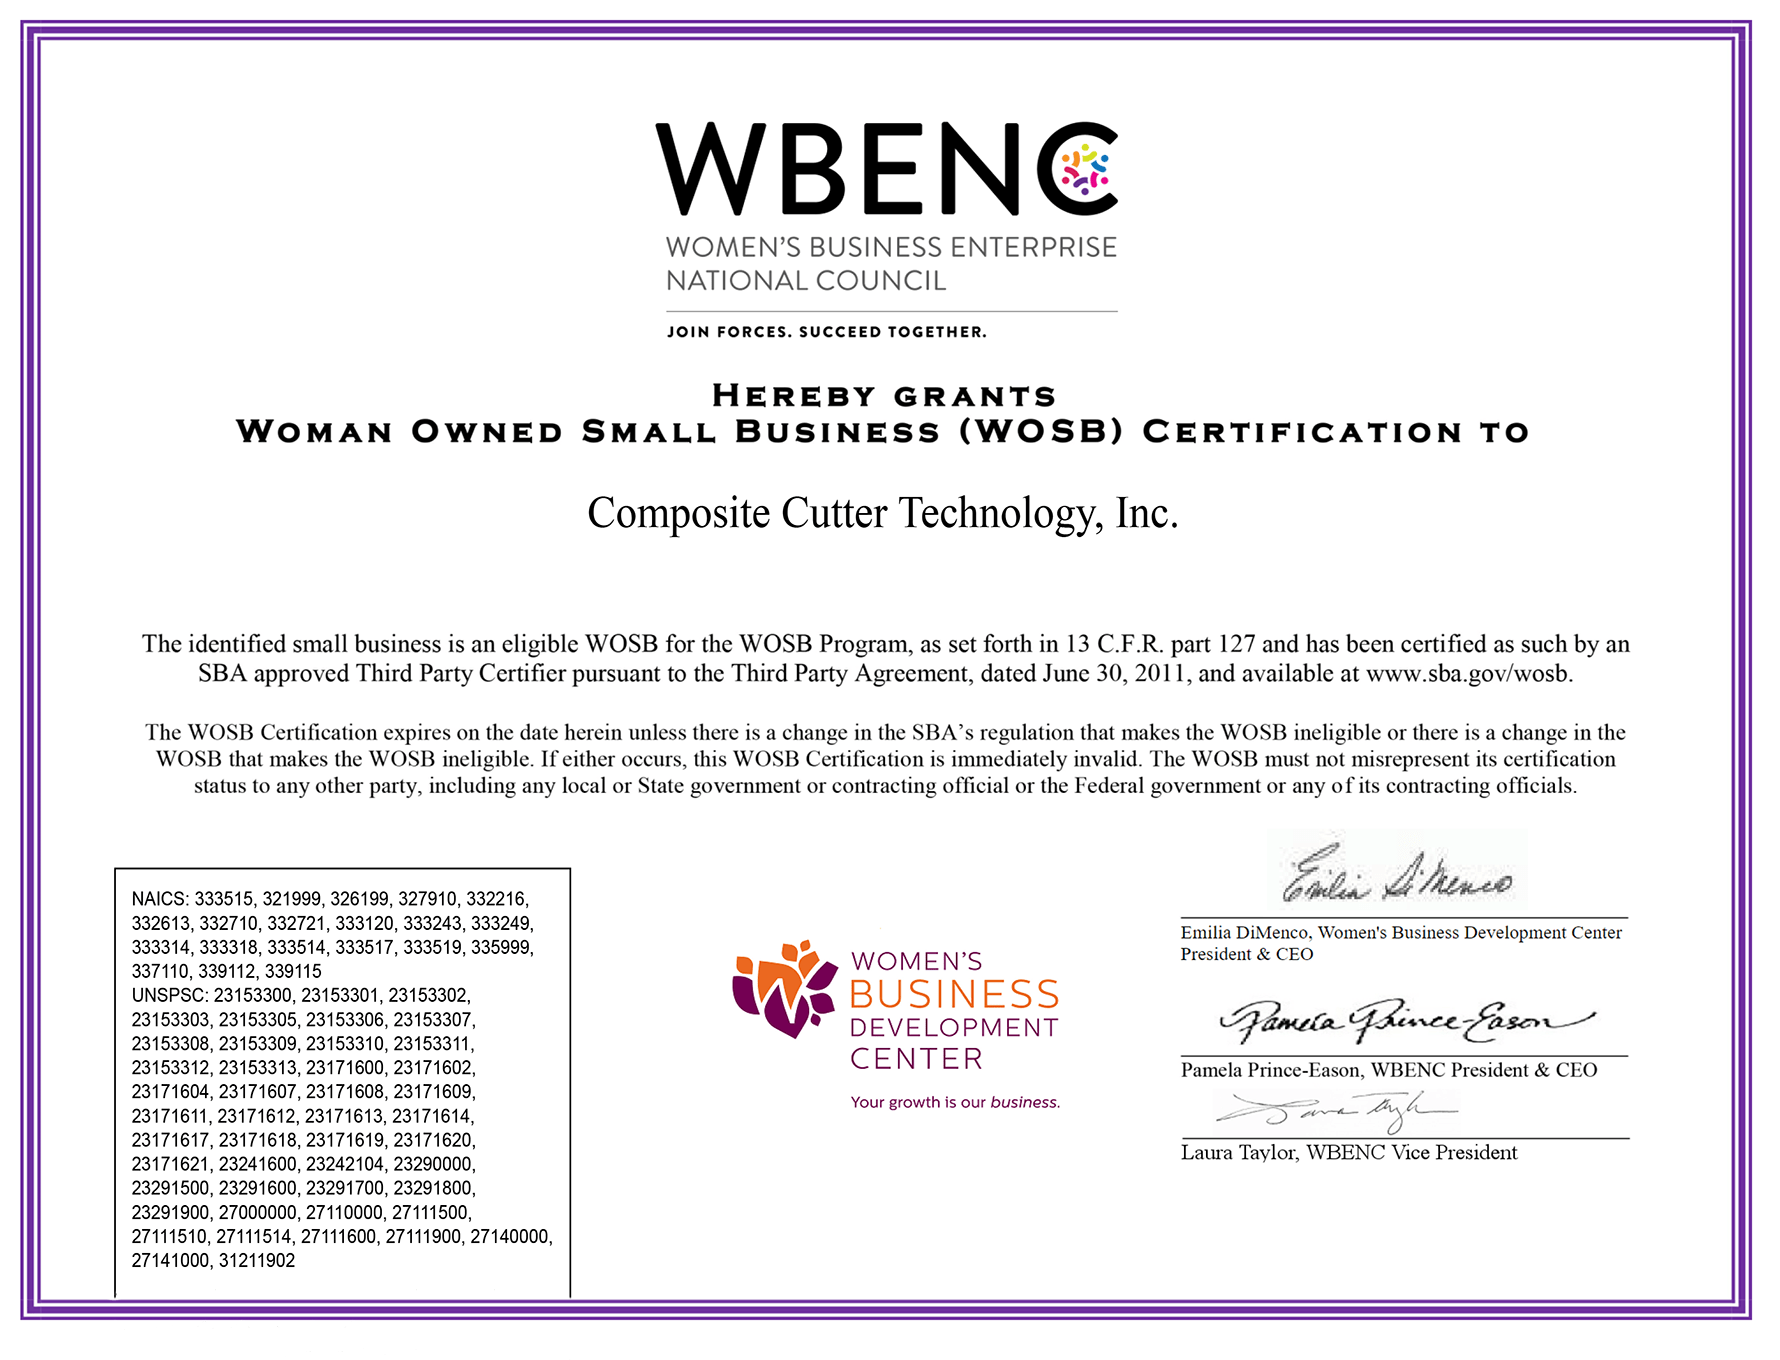 Woman Owned Small Business (WOSB) certification